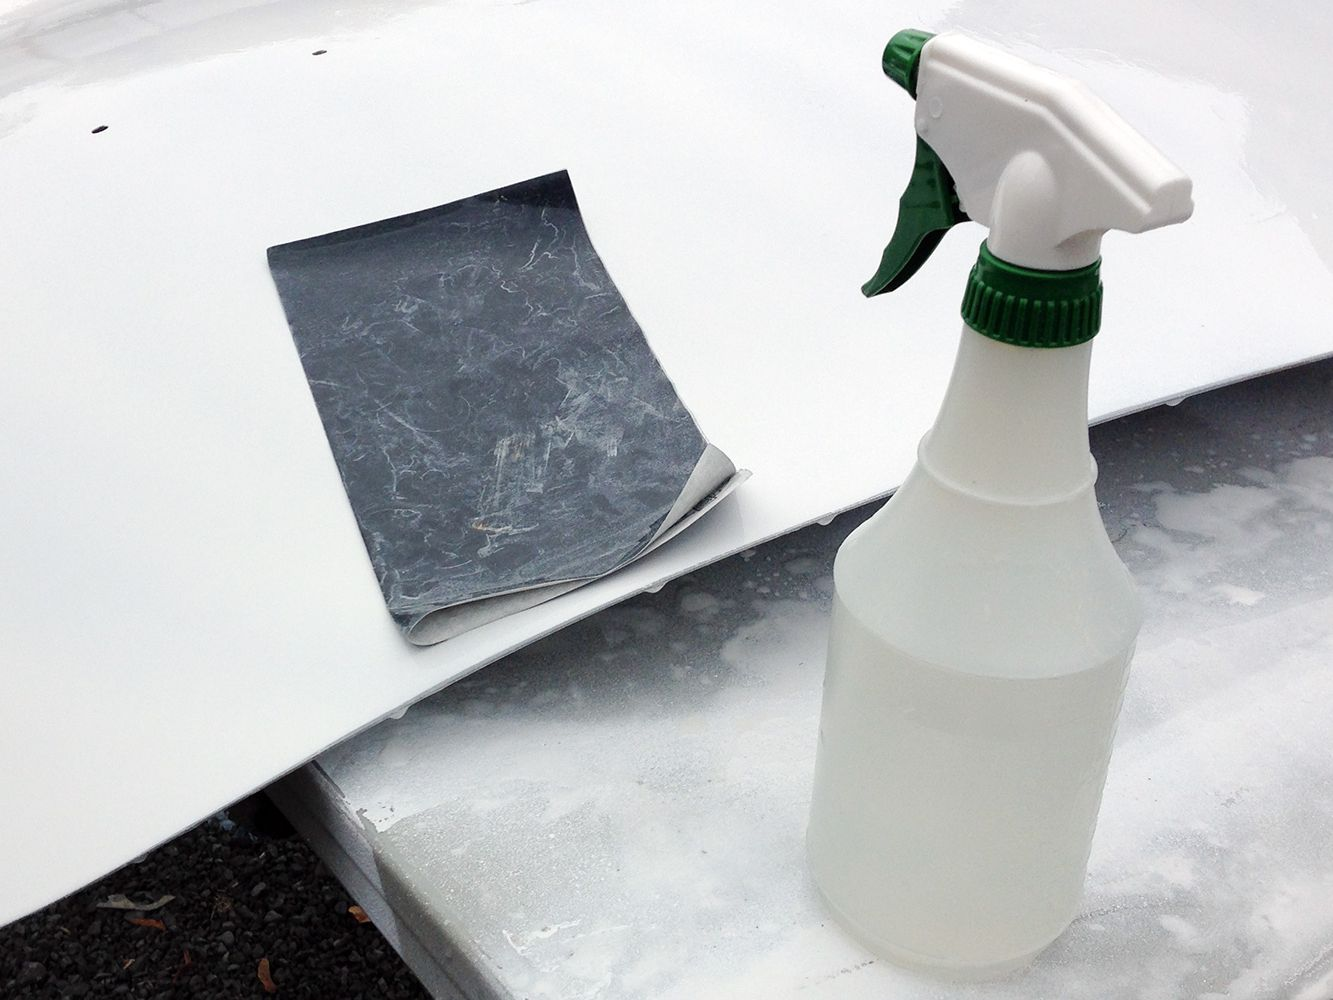 Cool Spray Paint Ideas That Will Save You A Ton Of Money ...